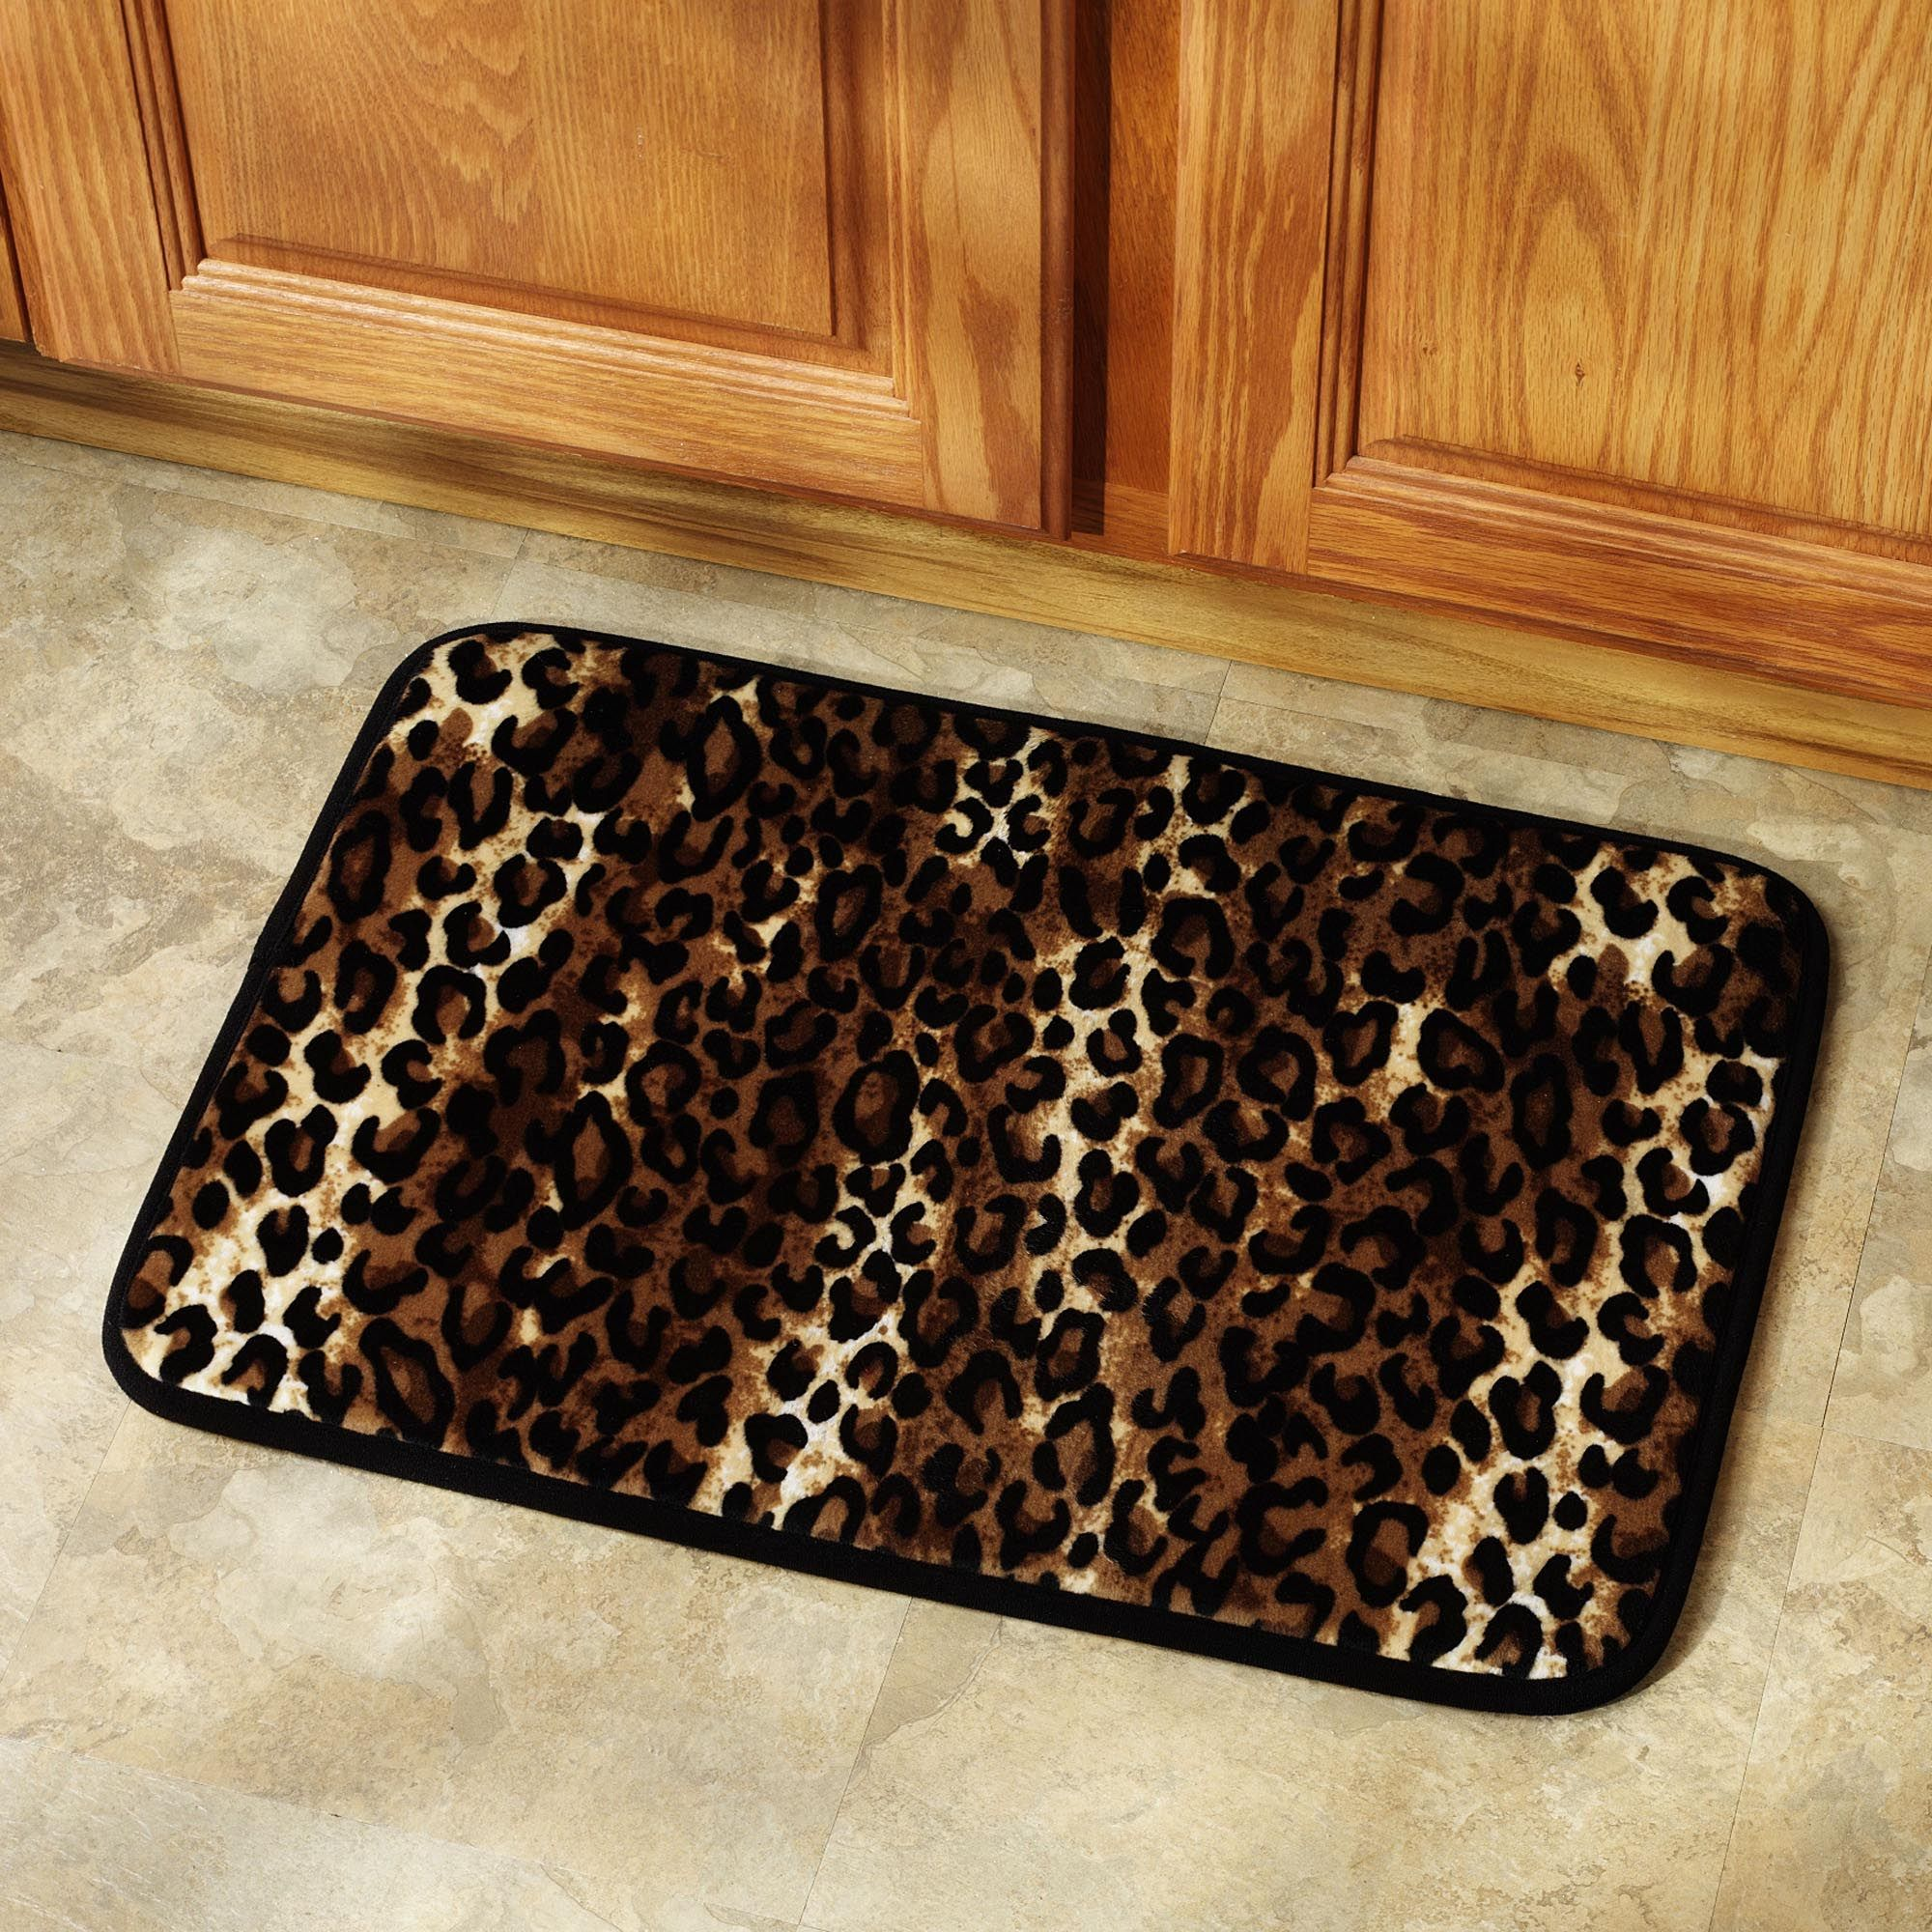 Great Leopard Print Bath Rug Rugs Pinterest And